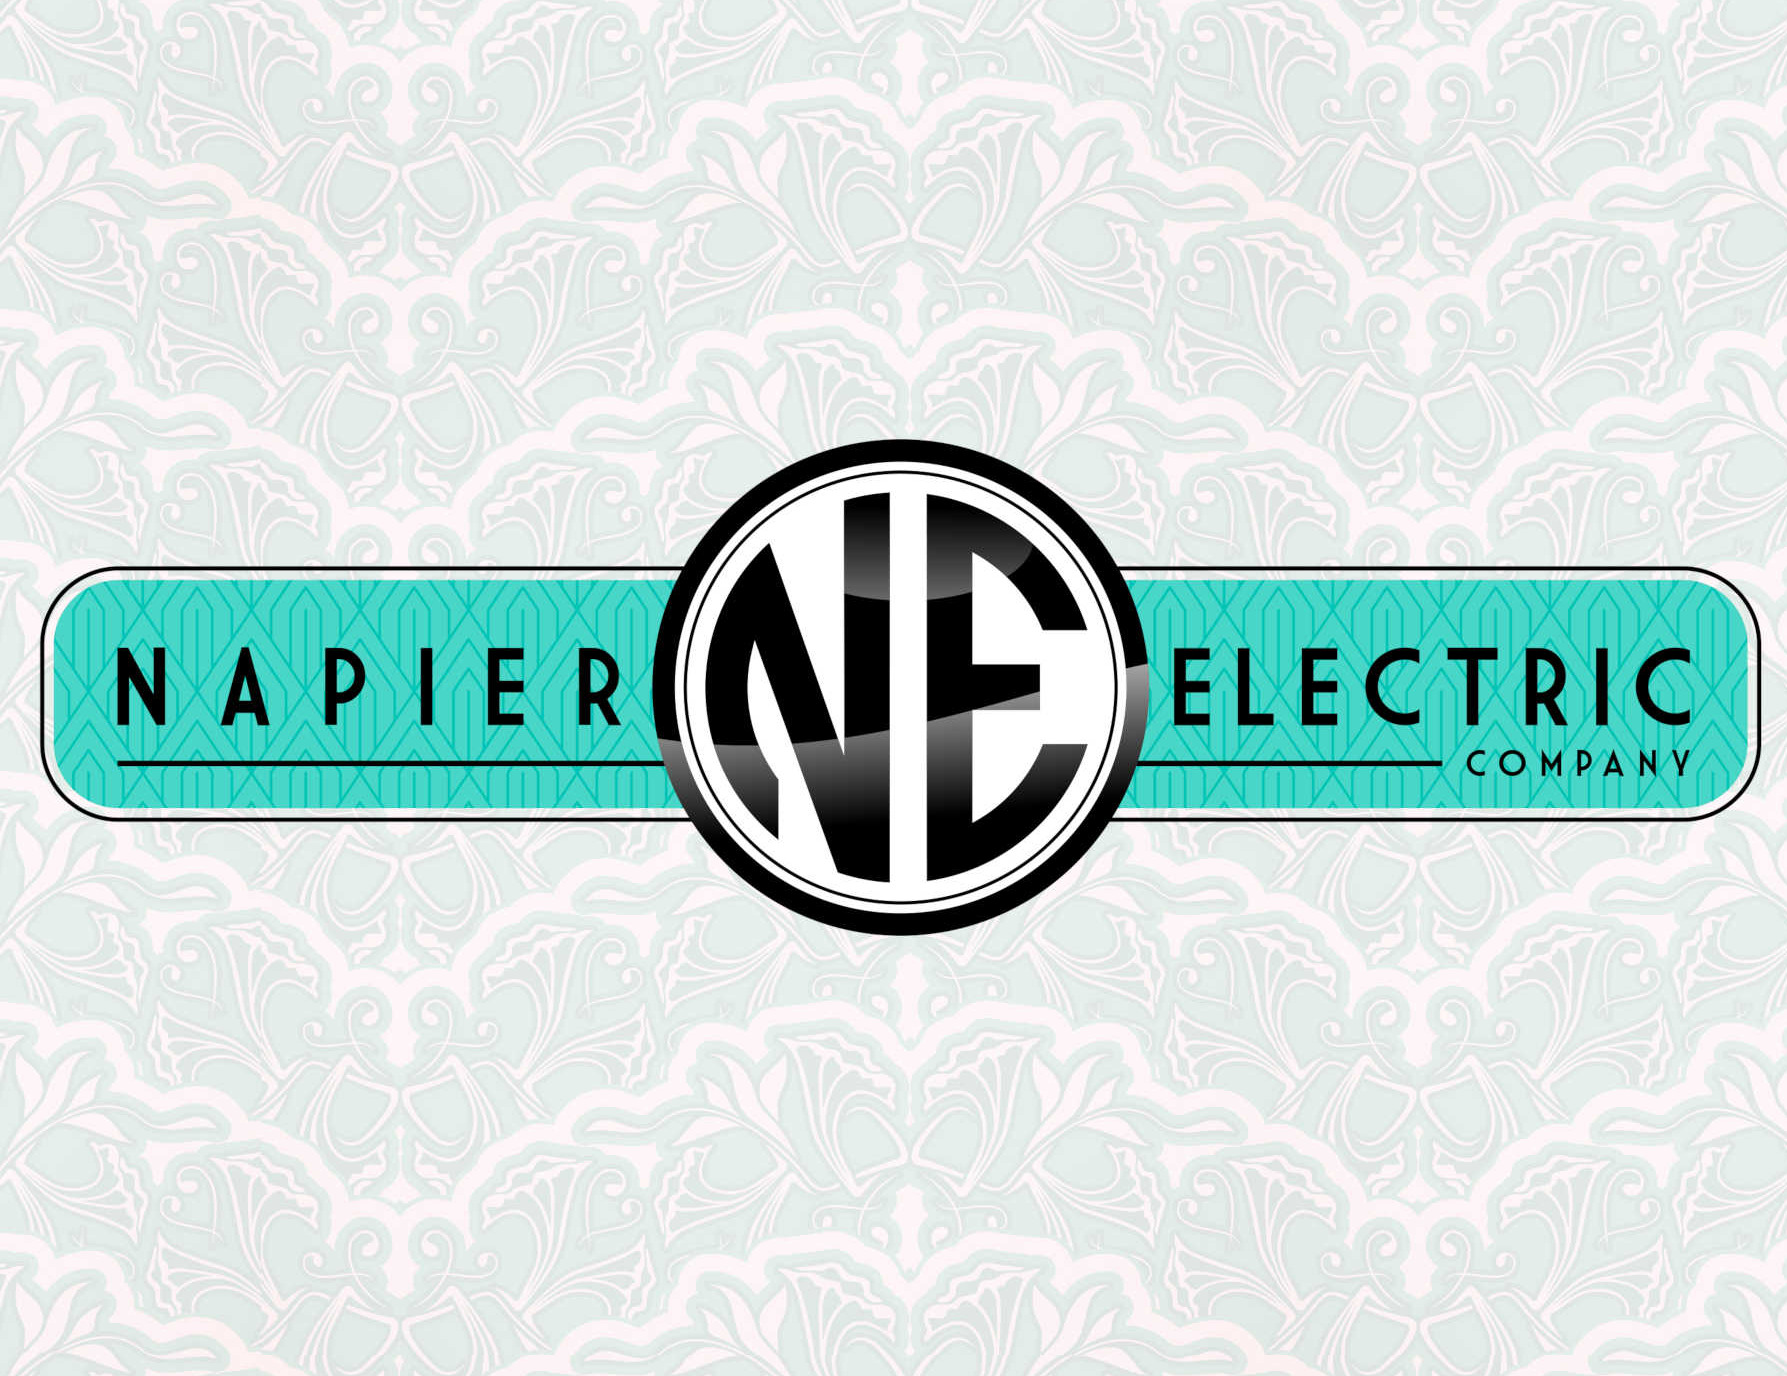 Napier Electric Company